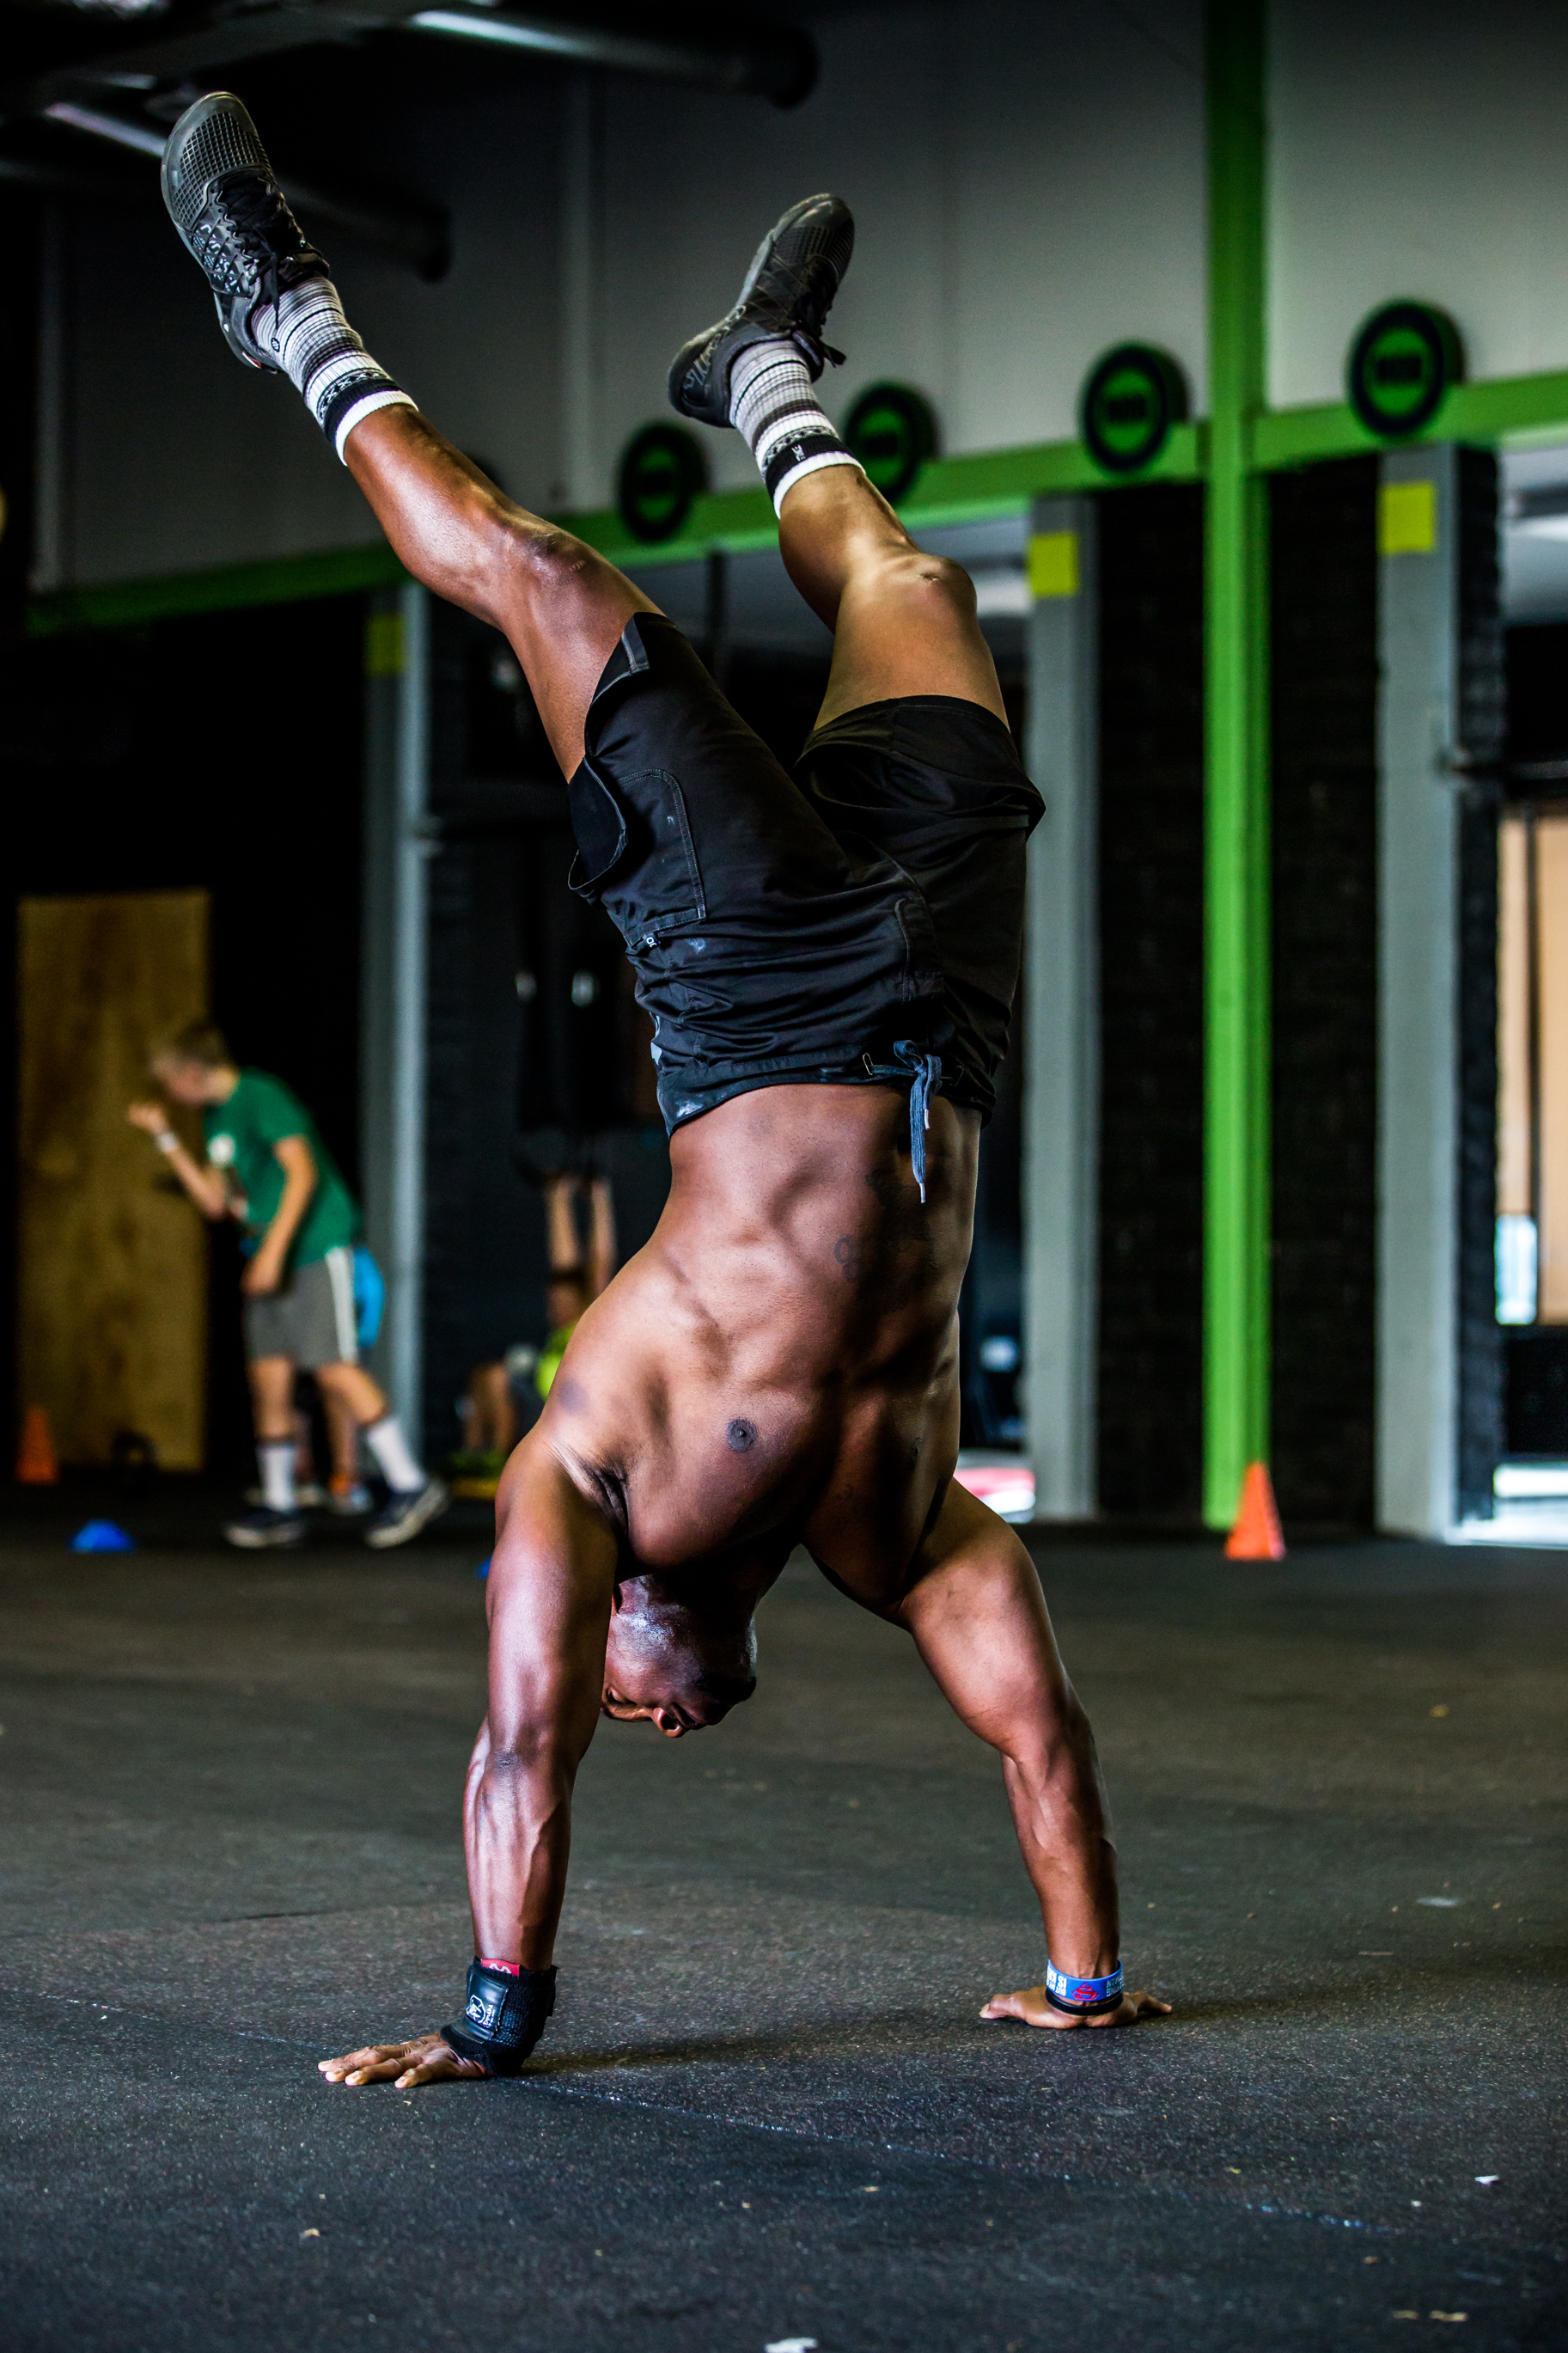 Athlete in a handstand